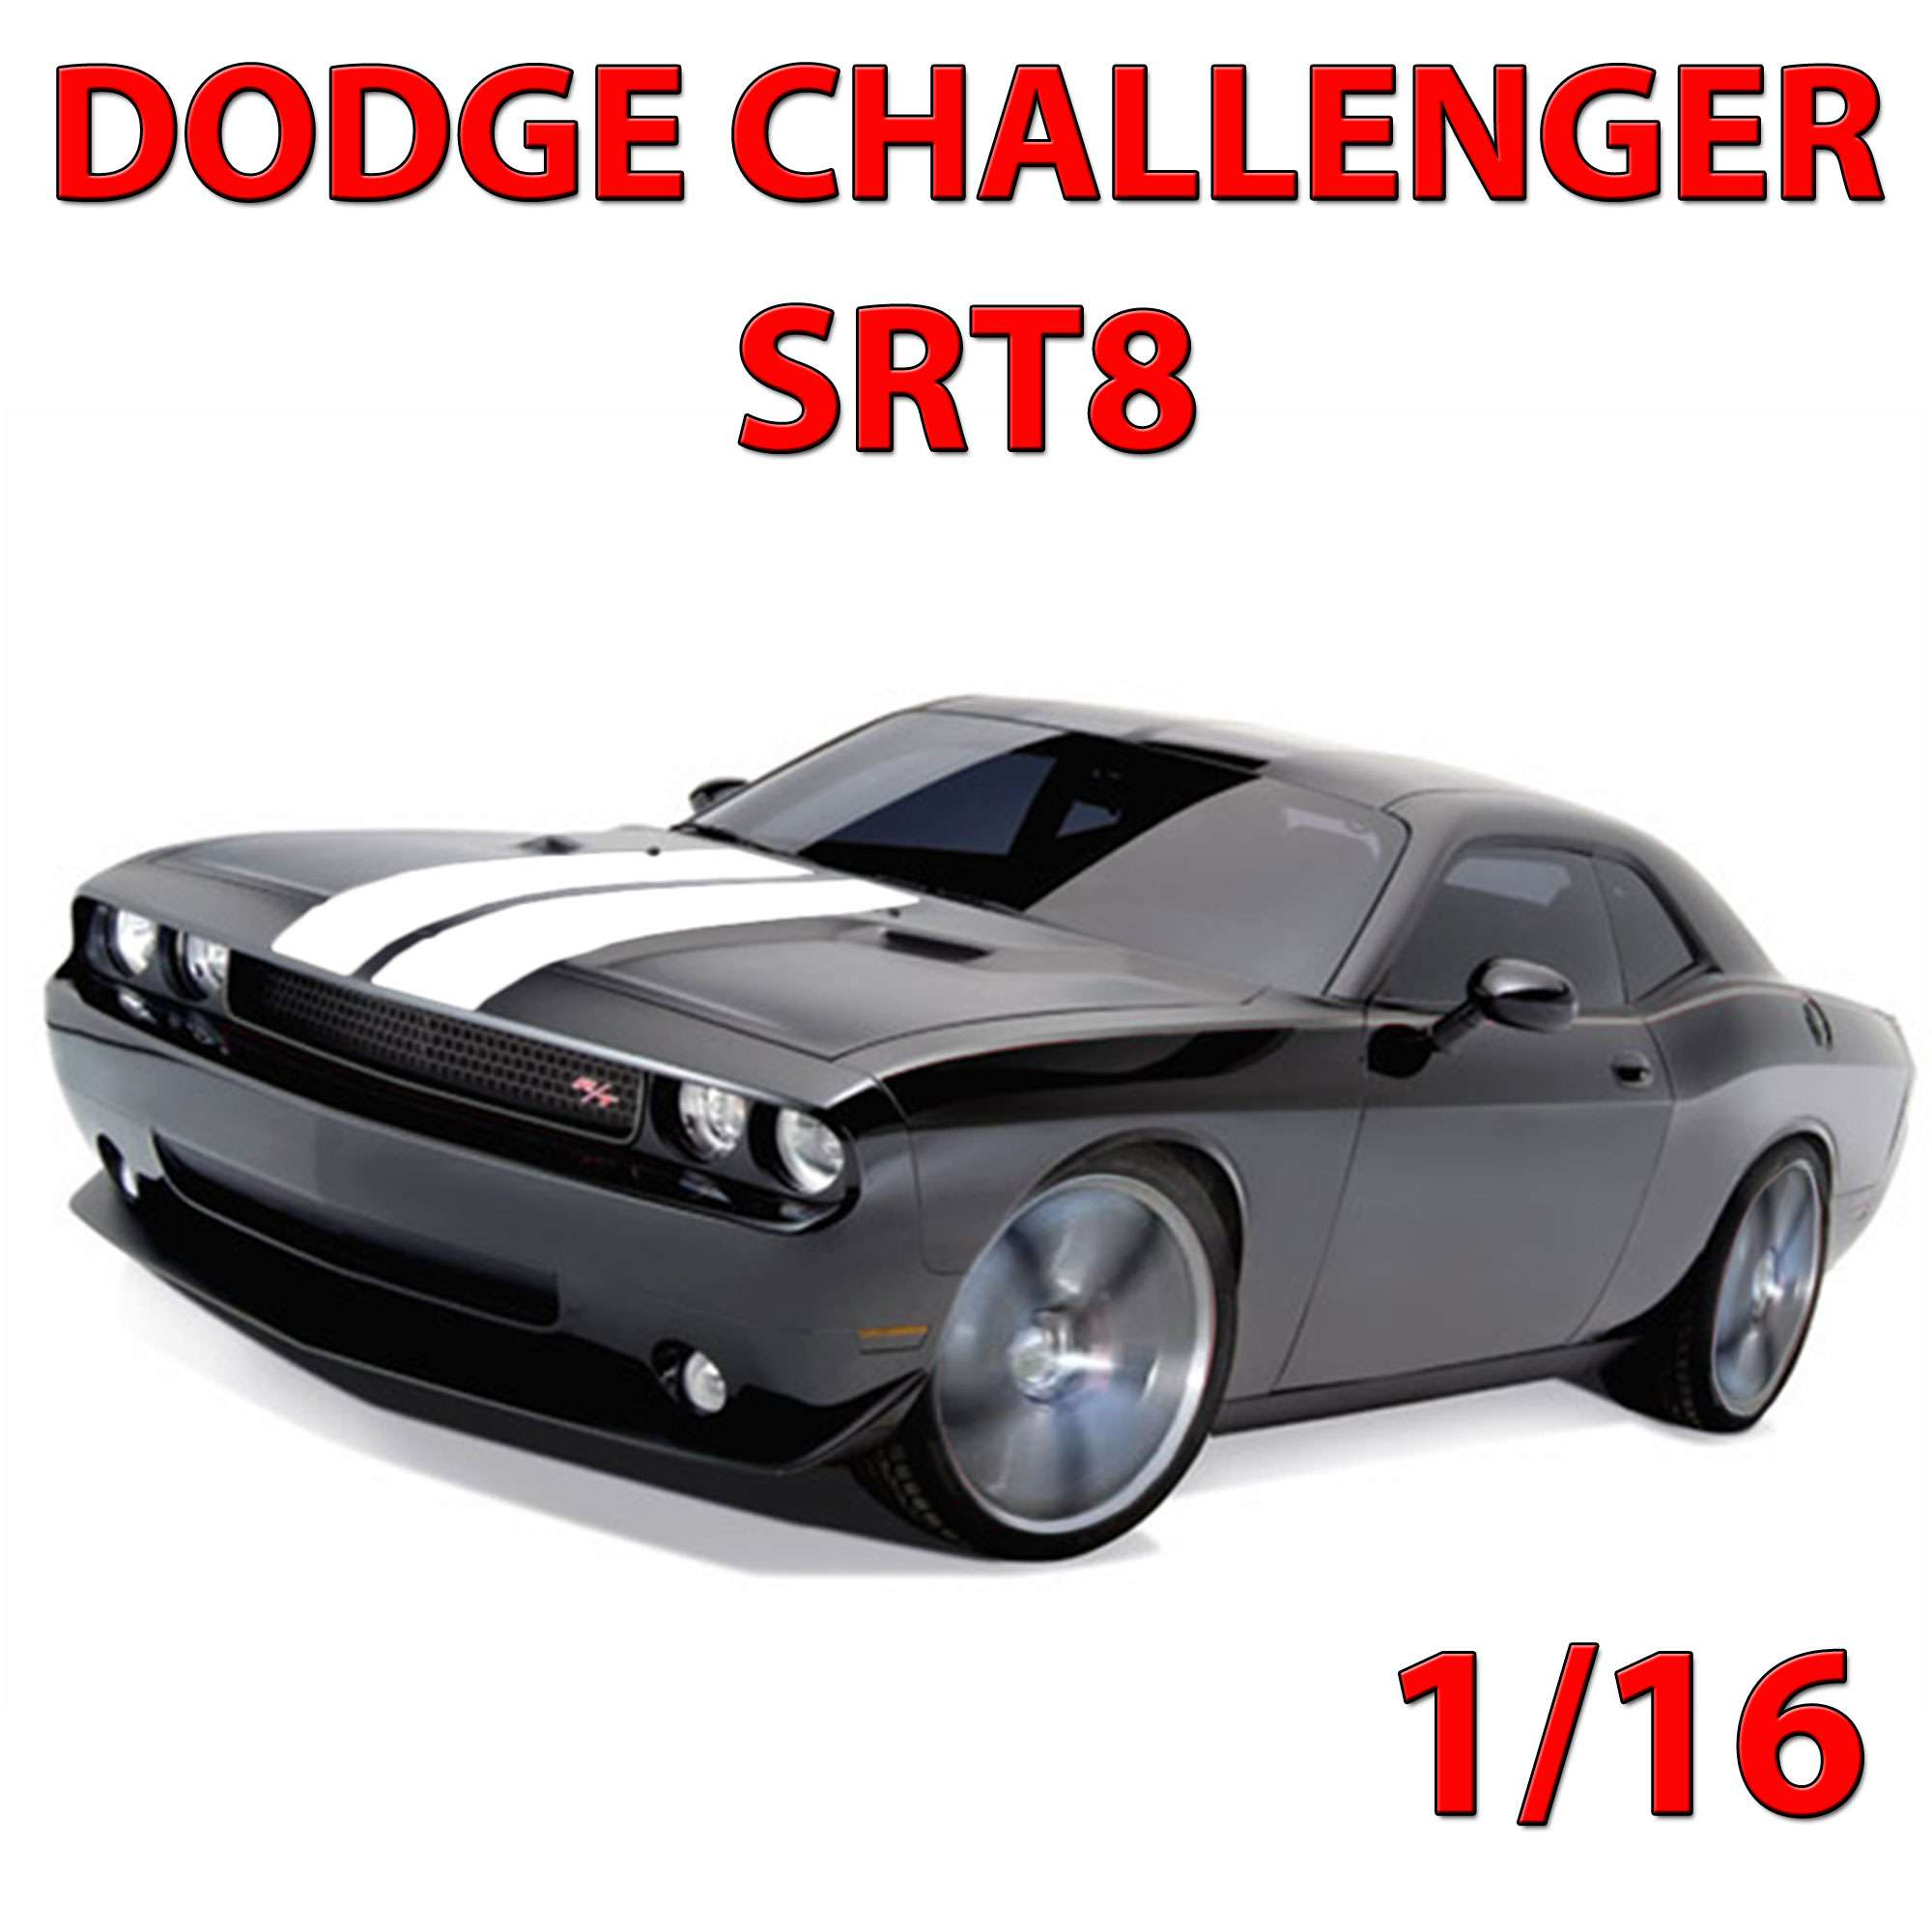 original dodge challenger srt8 rc ferngesteuertes auto fahrzeug 1 16 modell neu ebay. Black Bedroom Furniture Sets. Home Design Ideas